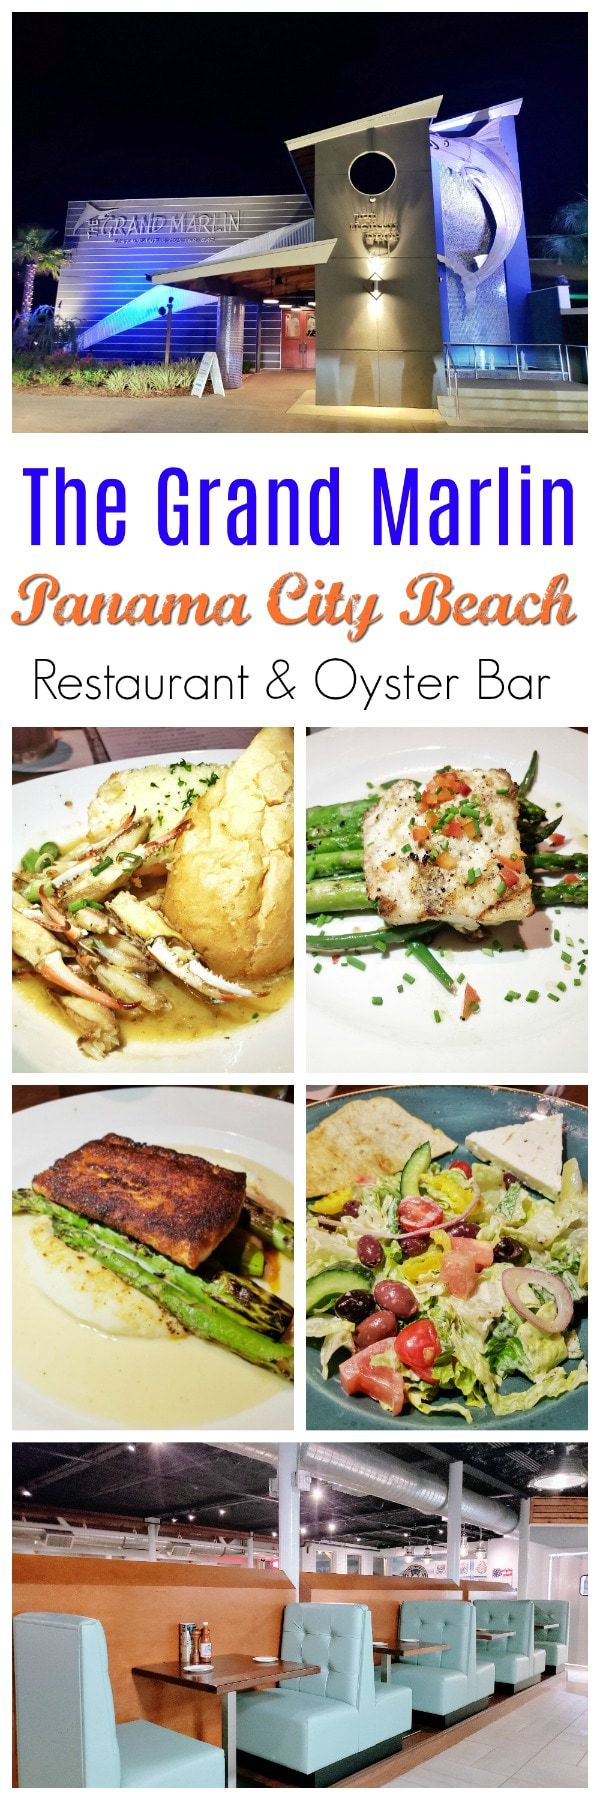 """The Grand Marlin: If you are looking for a restaurant that truly puts the """"fresh"""" in fresh seafood, The Grand Marlin Restaurant & Oyster Bar is where you need to go.It is the perfect melting pot for tourists and locals to all come together and enjoy the excellent flavors of the perfectly cooked food. #GrandMarlin #PanamaCityBeach"""